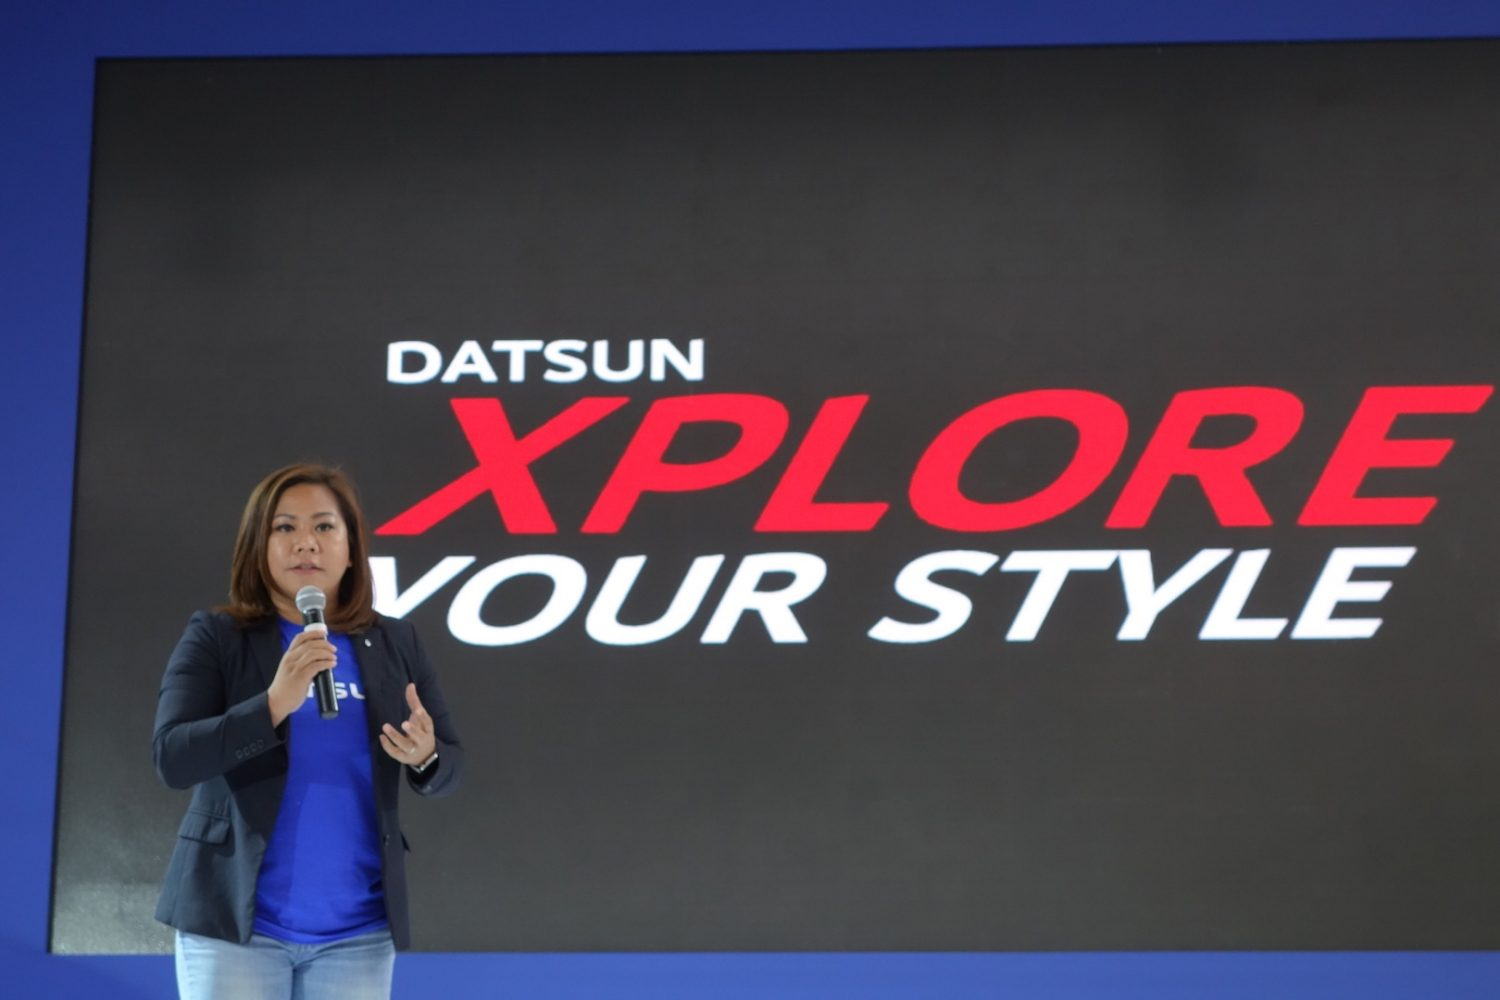 Datsun Xplore Your Style